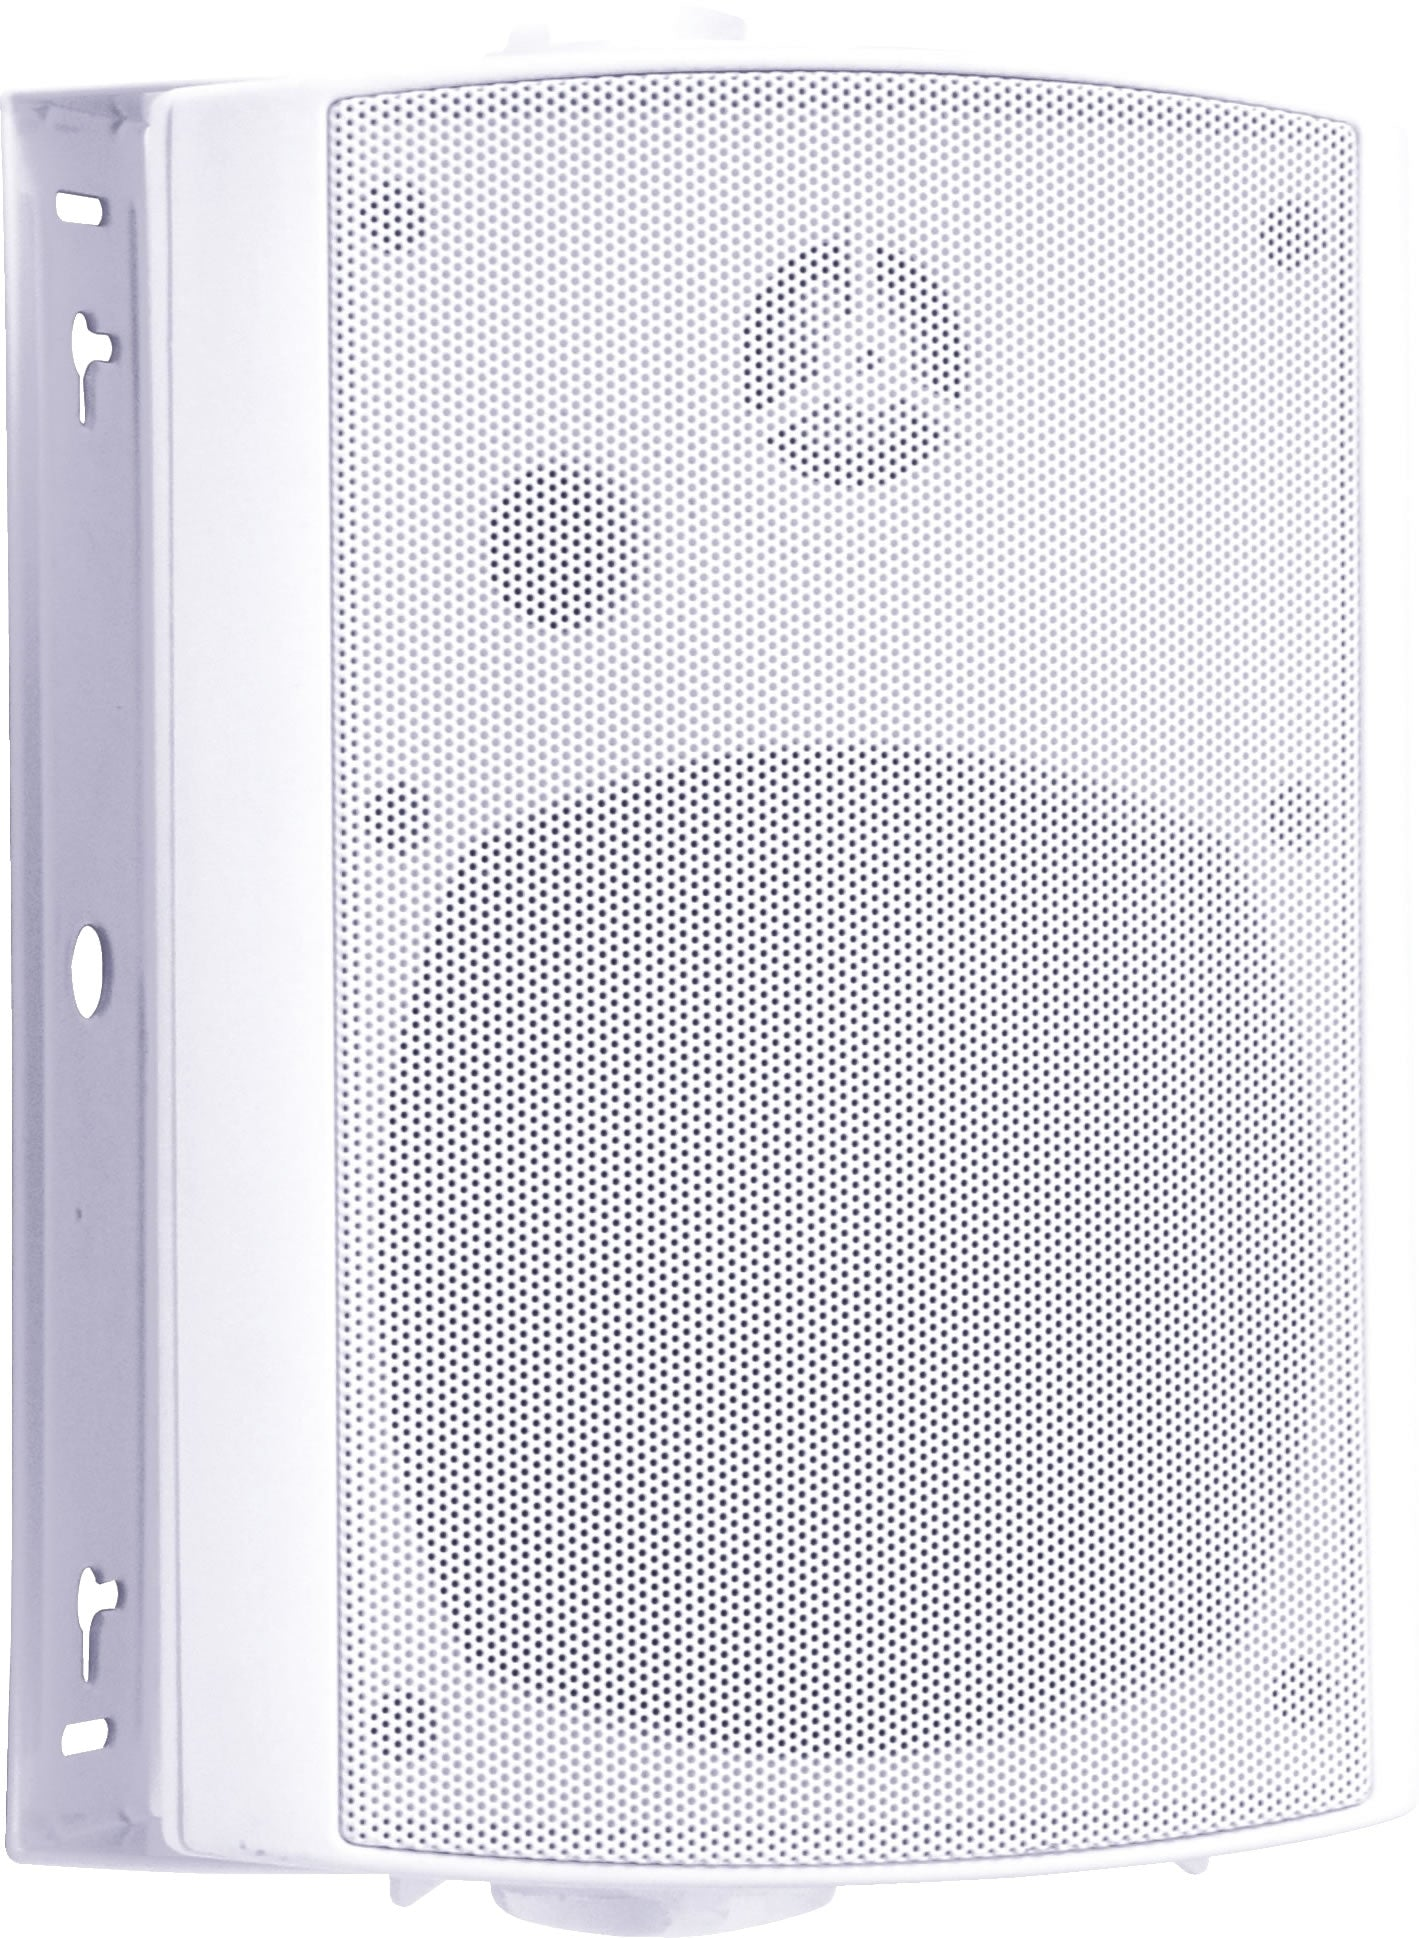 "89-8405W 5.25"" 2-Way Mini Box Speaker with Poly Tweeter - White"